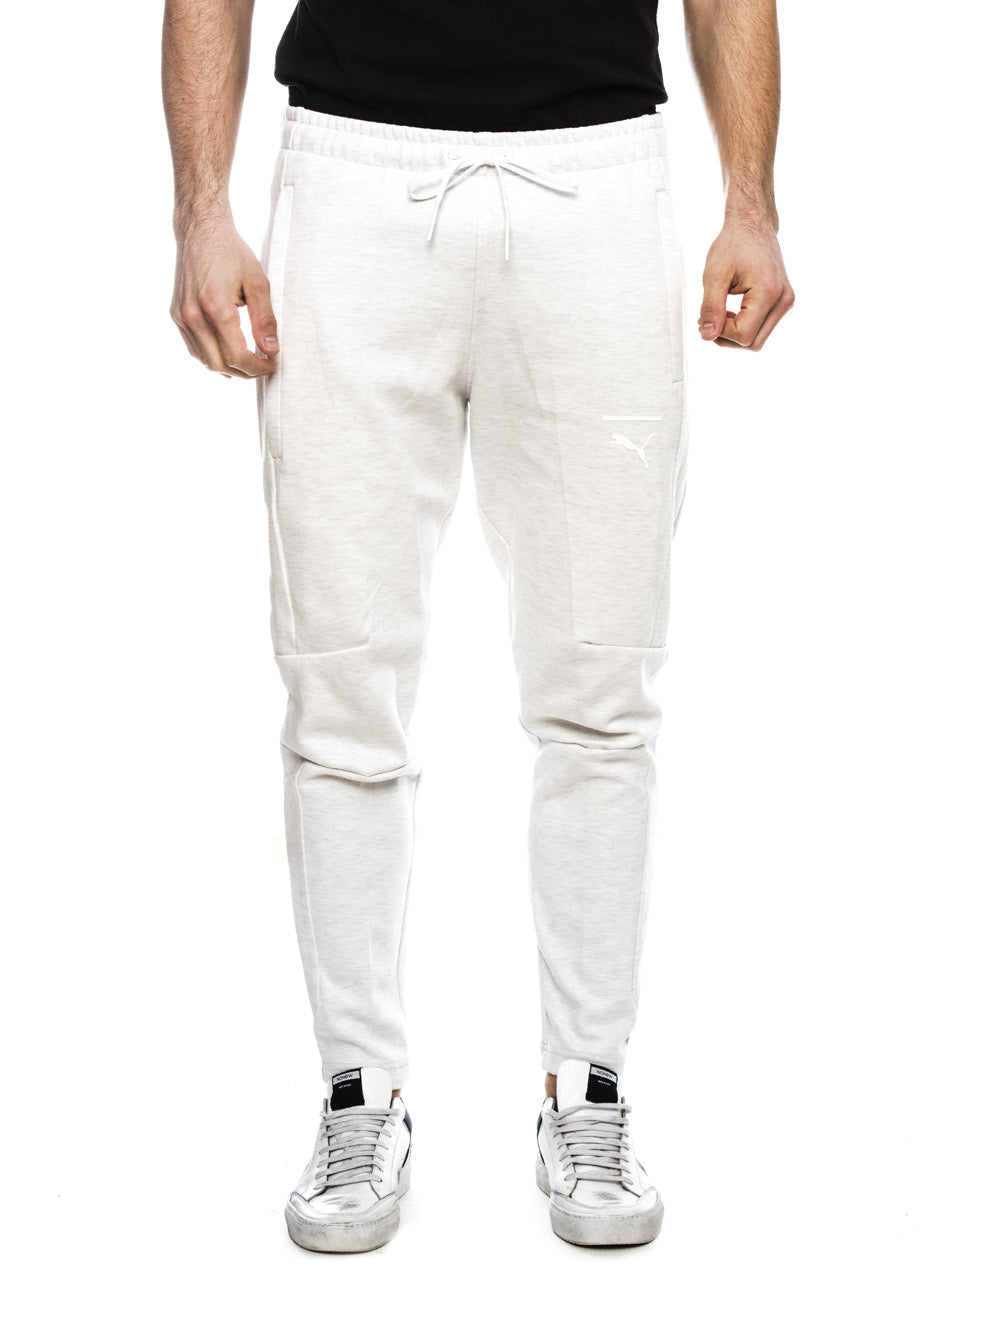 8709c48ff15f PACE PRIMARY PANTS PUMA IN WHITE ICE – Nohow Style